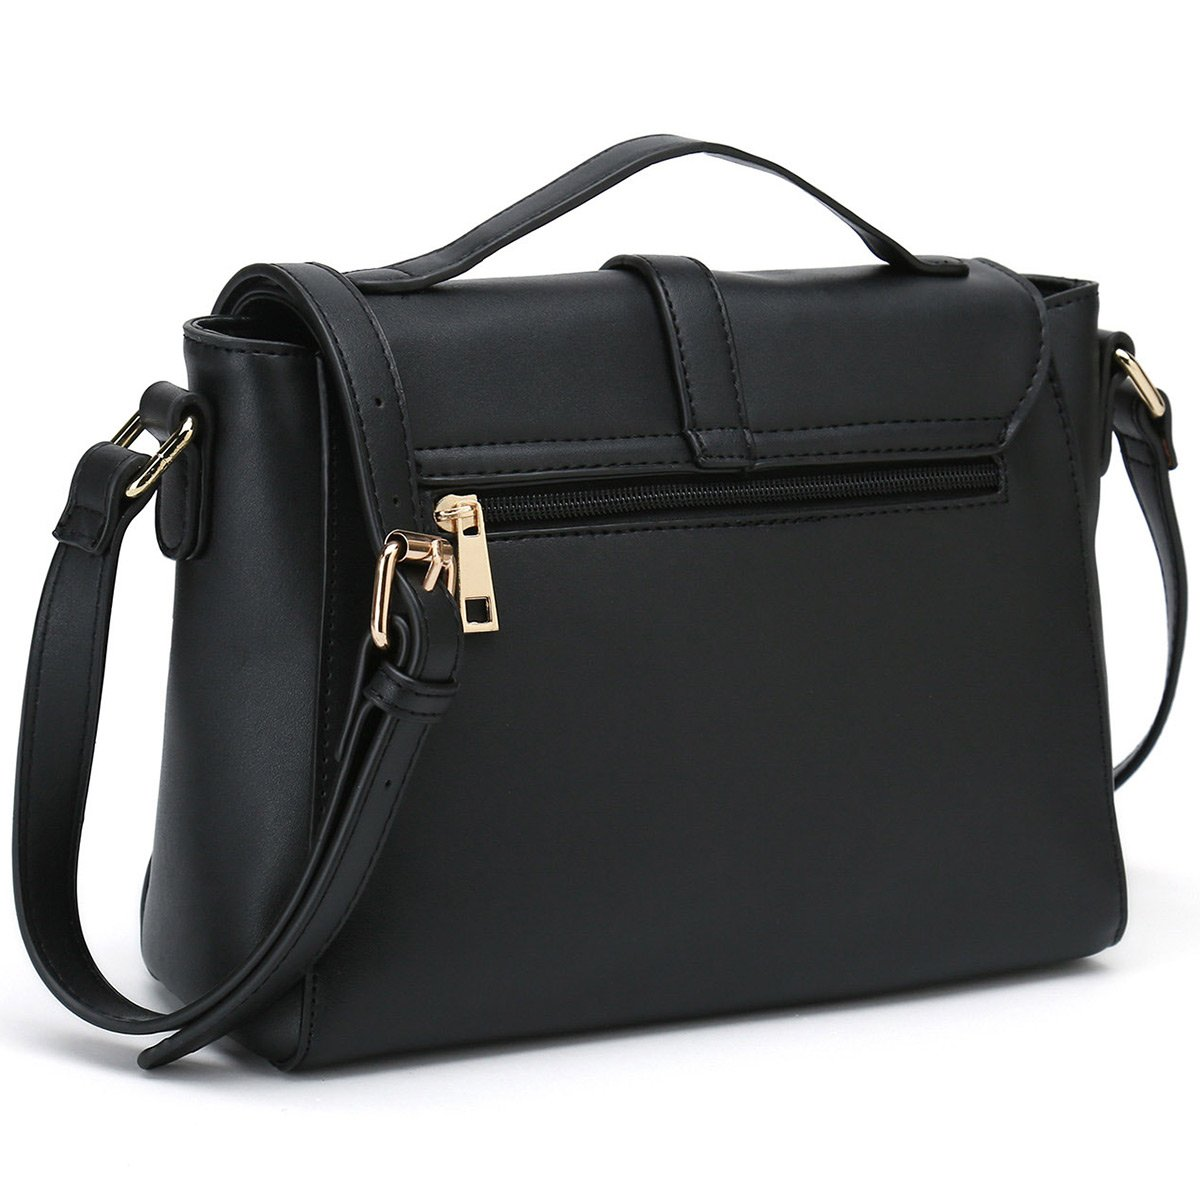 2ebe6e71df26 Ladies Designer Purses Cross Body Handbags Trendy Bags for Women Shoulder  Bags (Black)  Handbags  Amazon.com